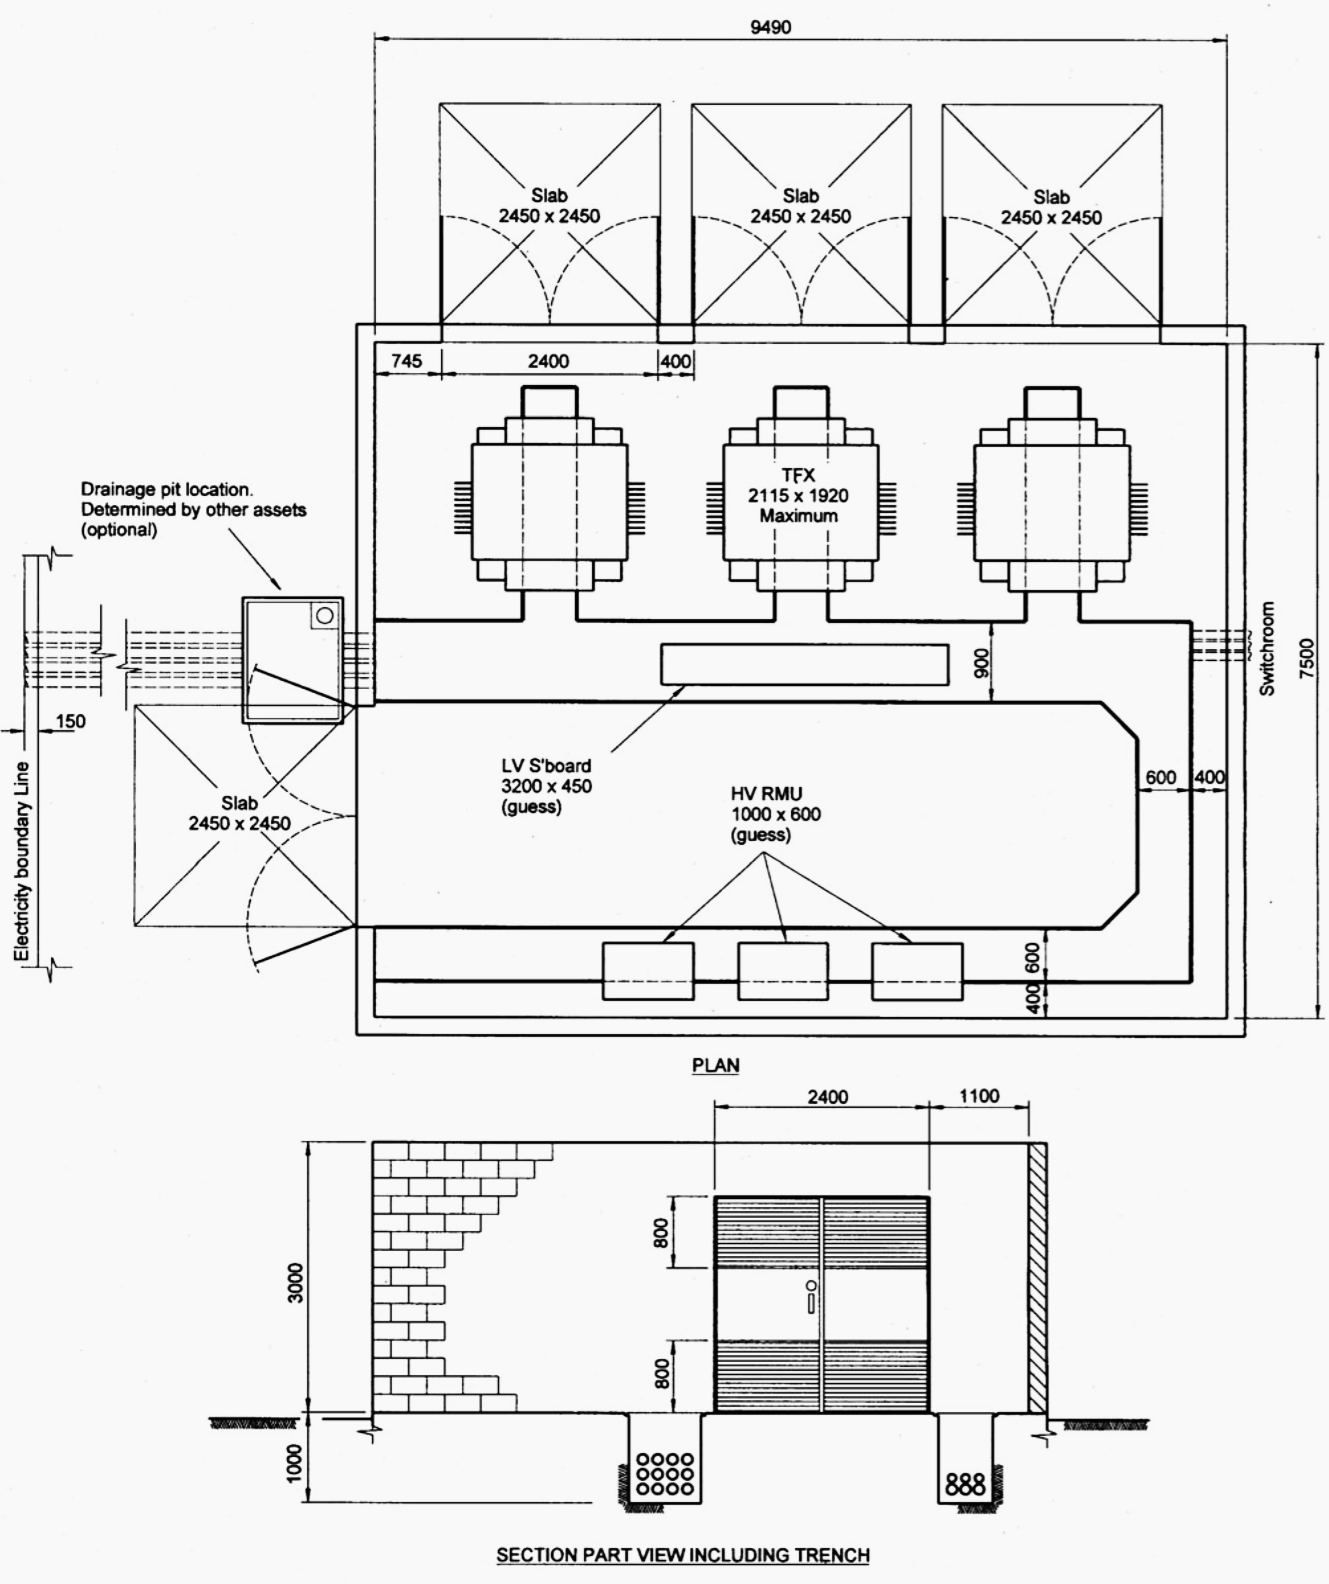 indoor distribution substation layout with 3 transformers emf containment and more than 1 external wall [ 1329 x 1584 Pixel ]